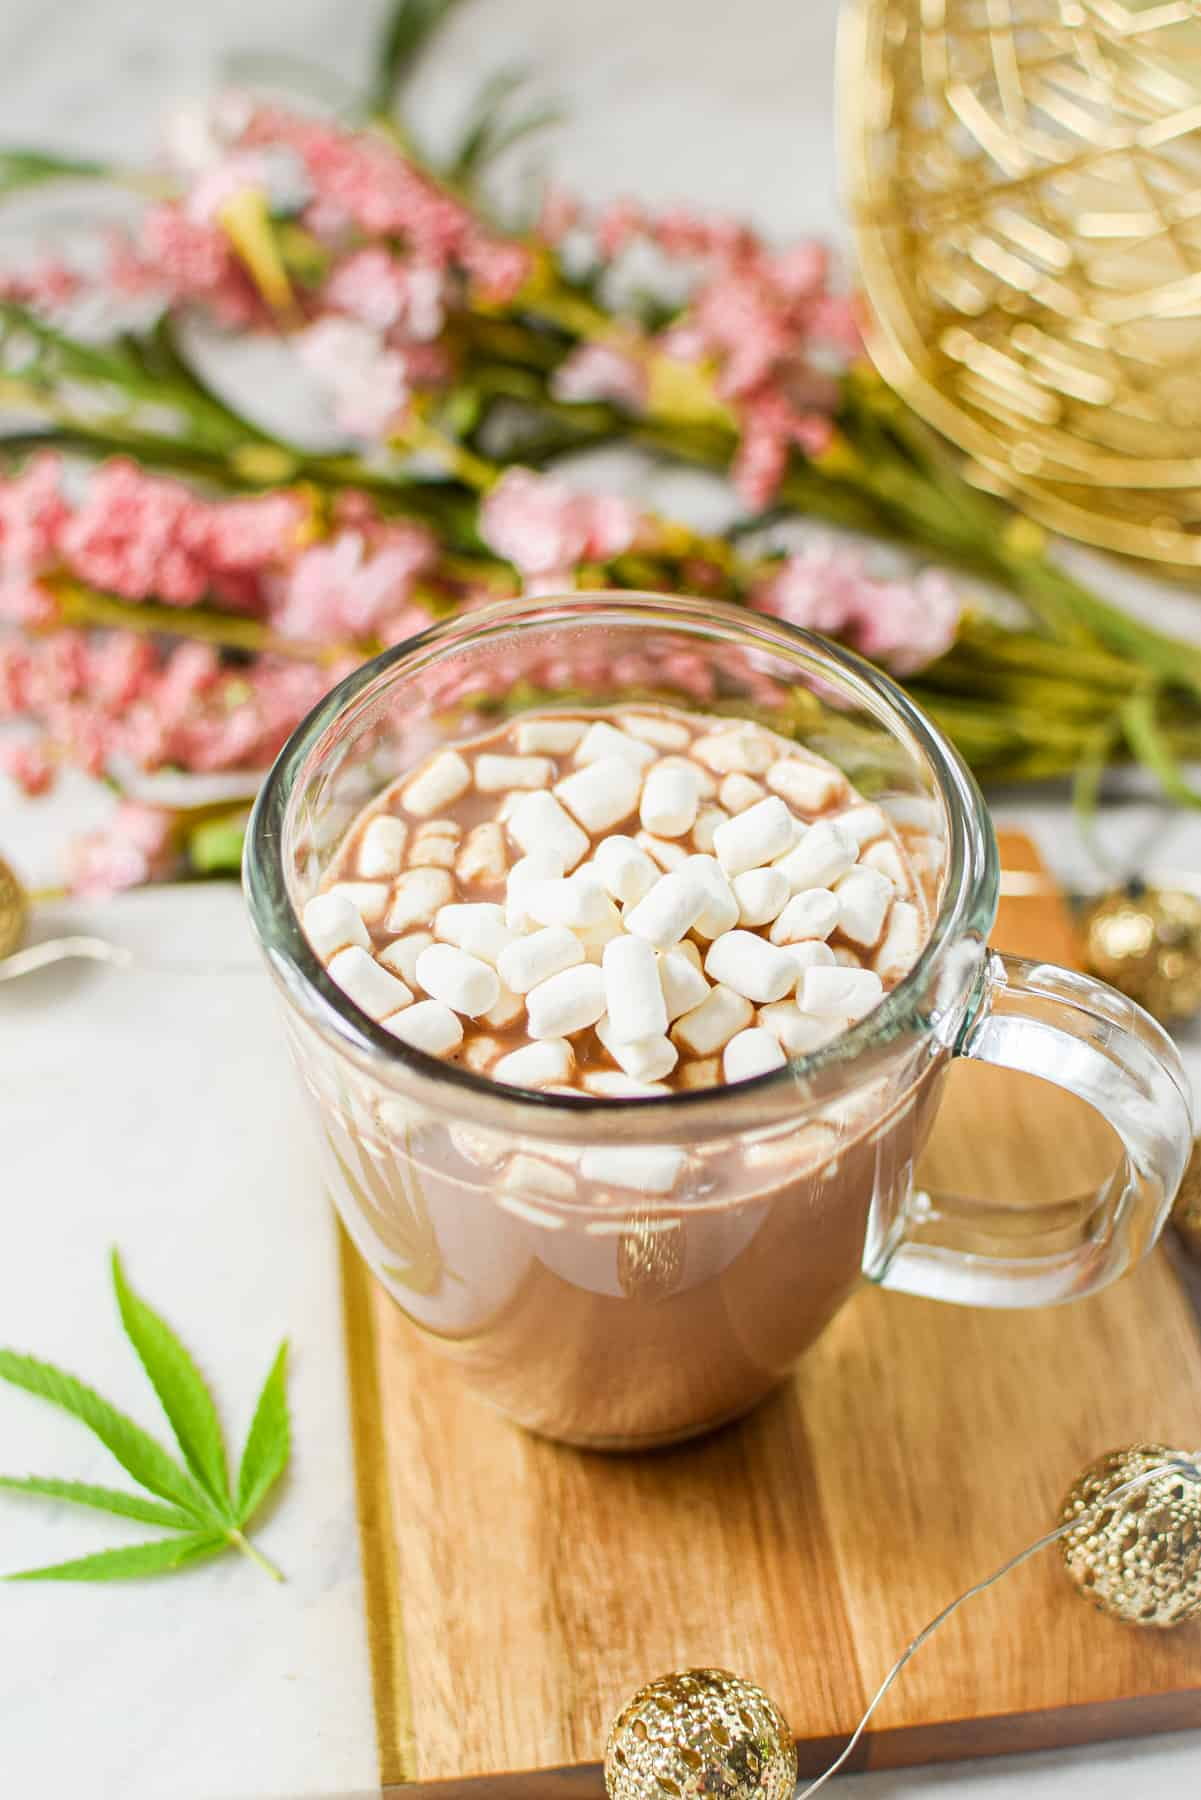 A white countertop with a cutting board topped with a clear mug full of cannabis hot cocoa with marshmallows